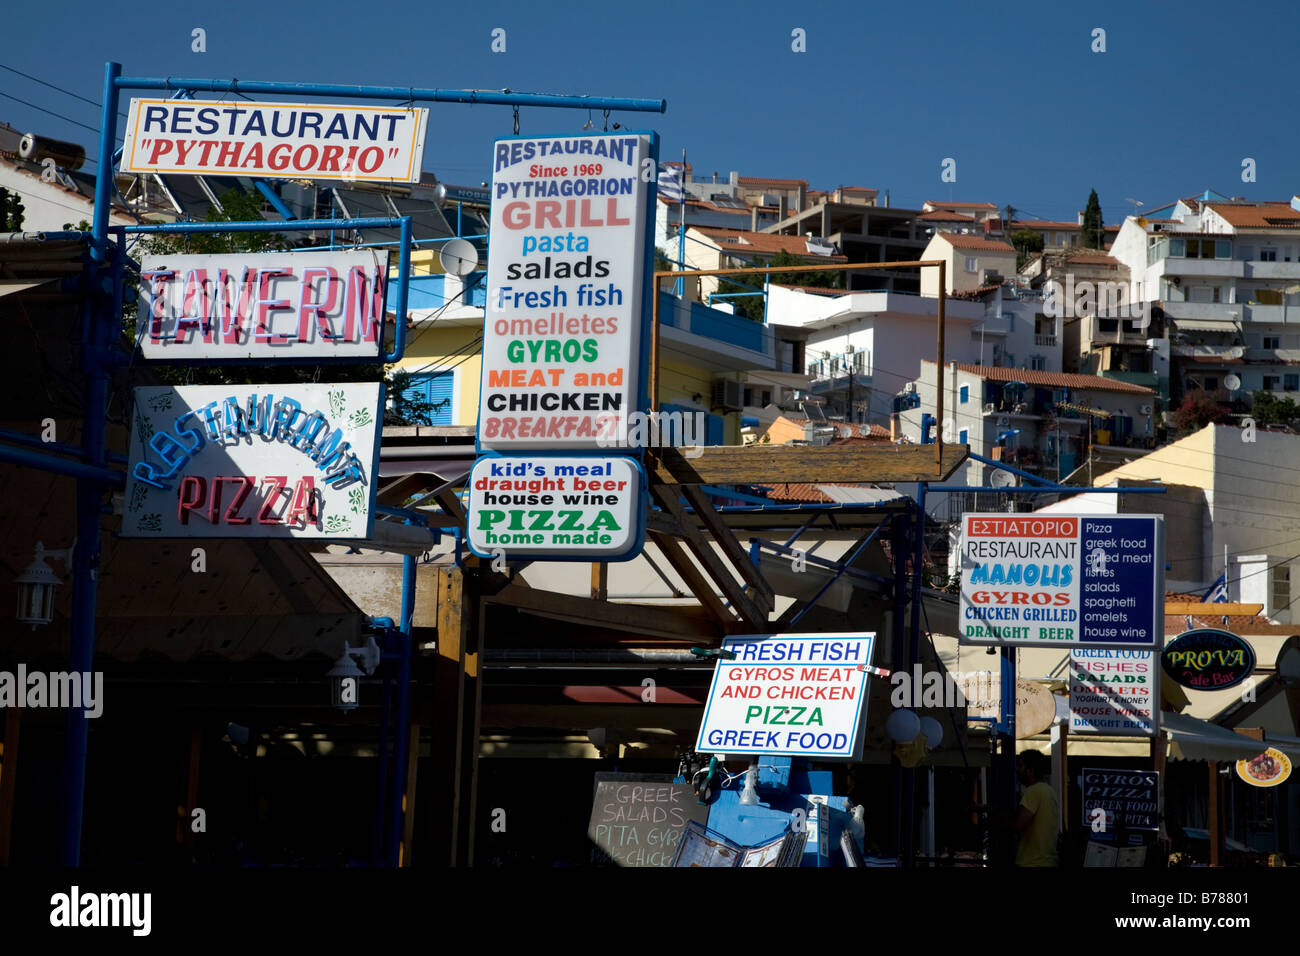 Restaurant signs on waterfront Pythagorion Samos Greece Stock Photo